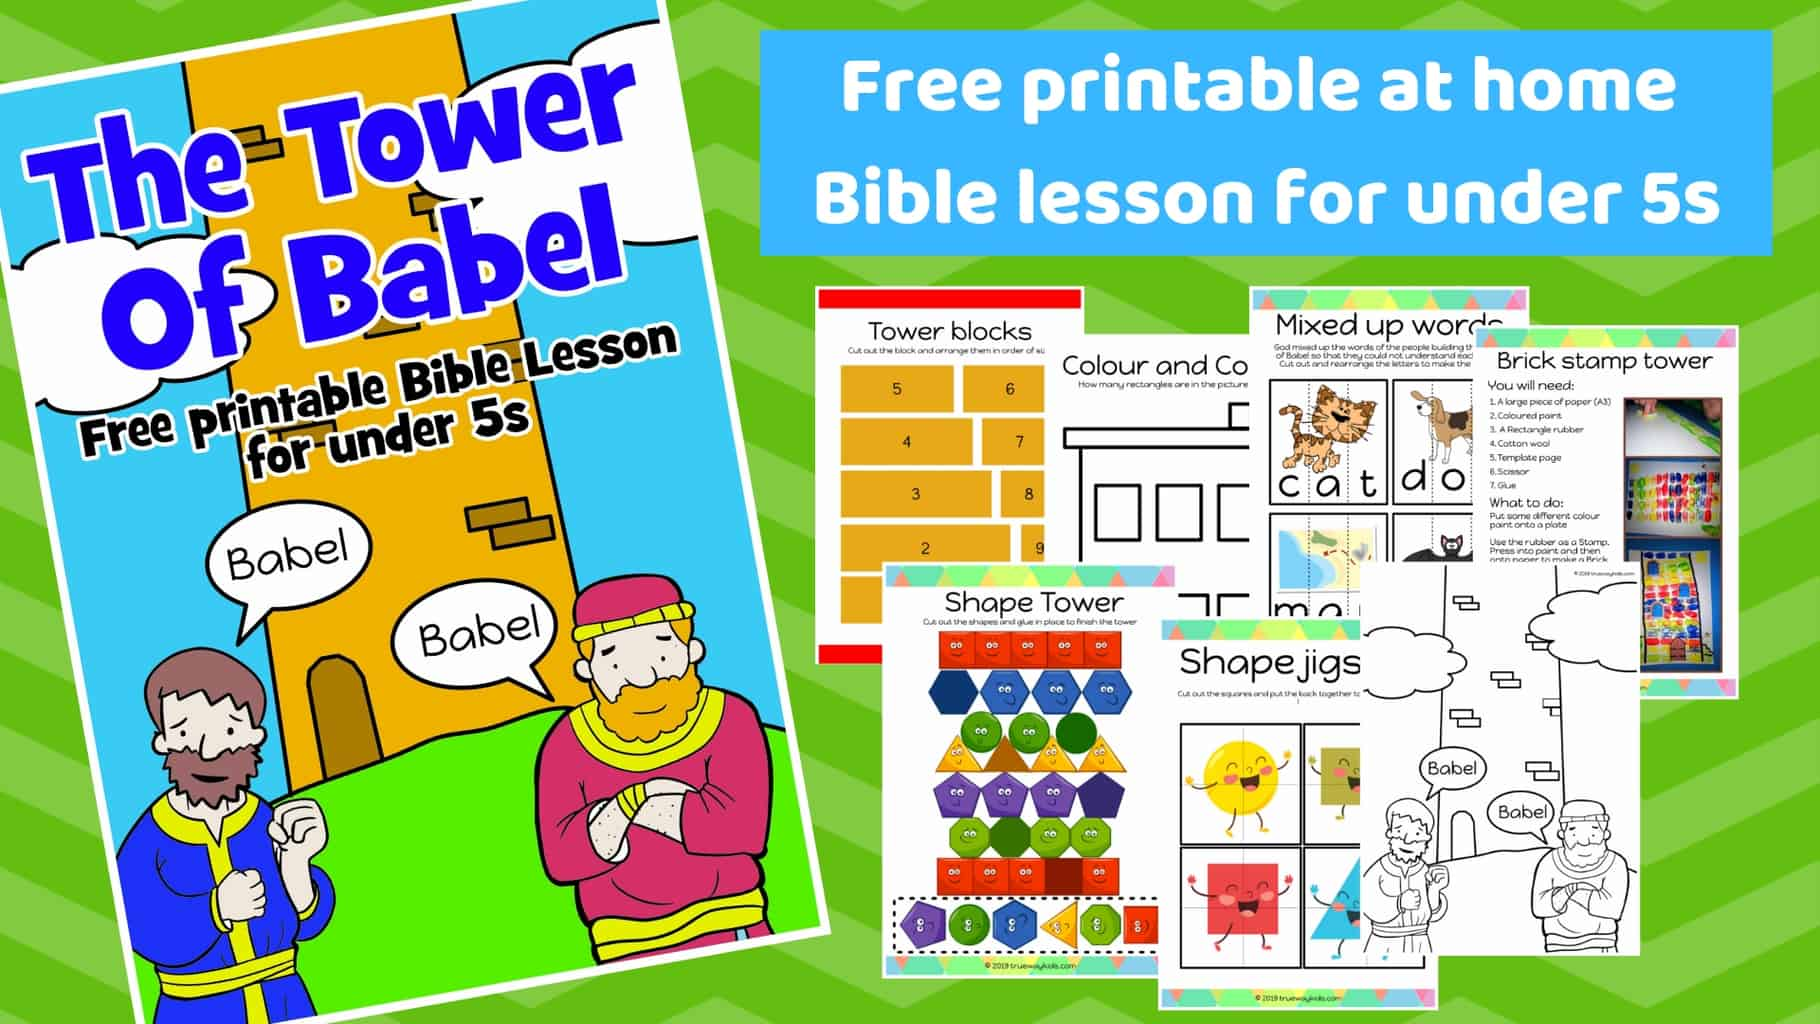 graphic regarding Bible Lessons for Adults Free Printable named The Tower of Babel - Cost-free printable Bible lesson for